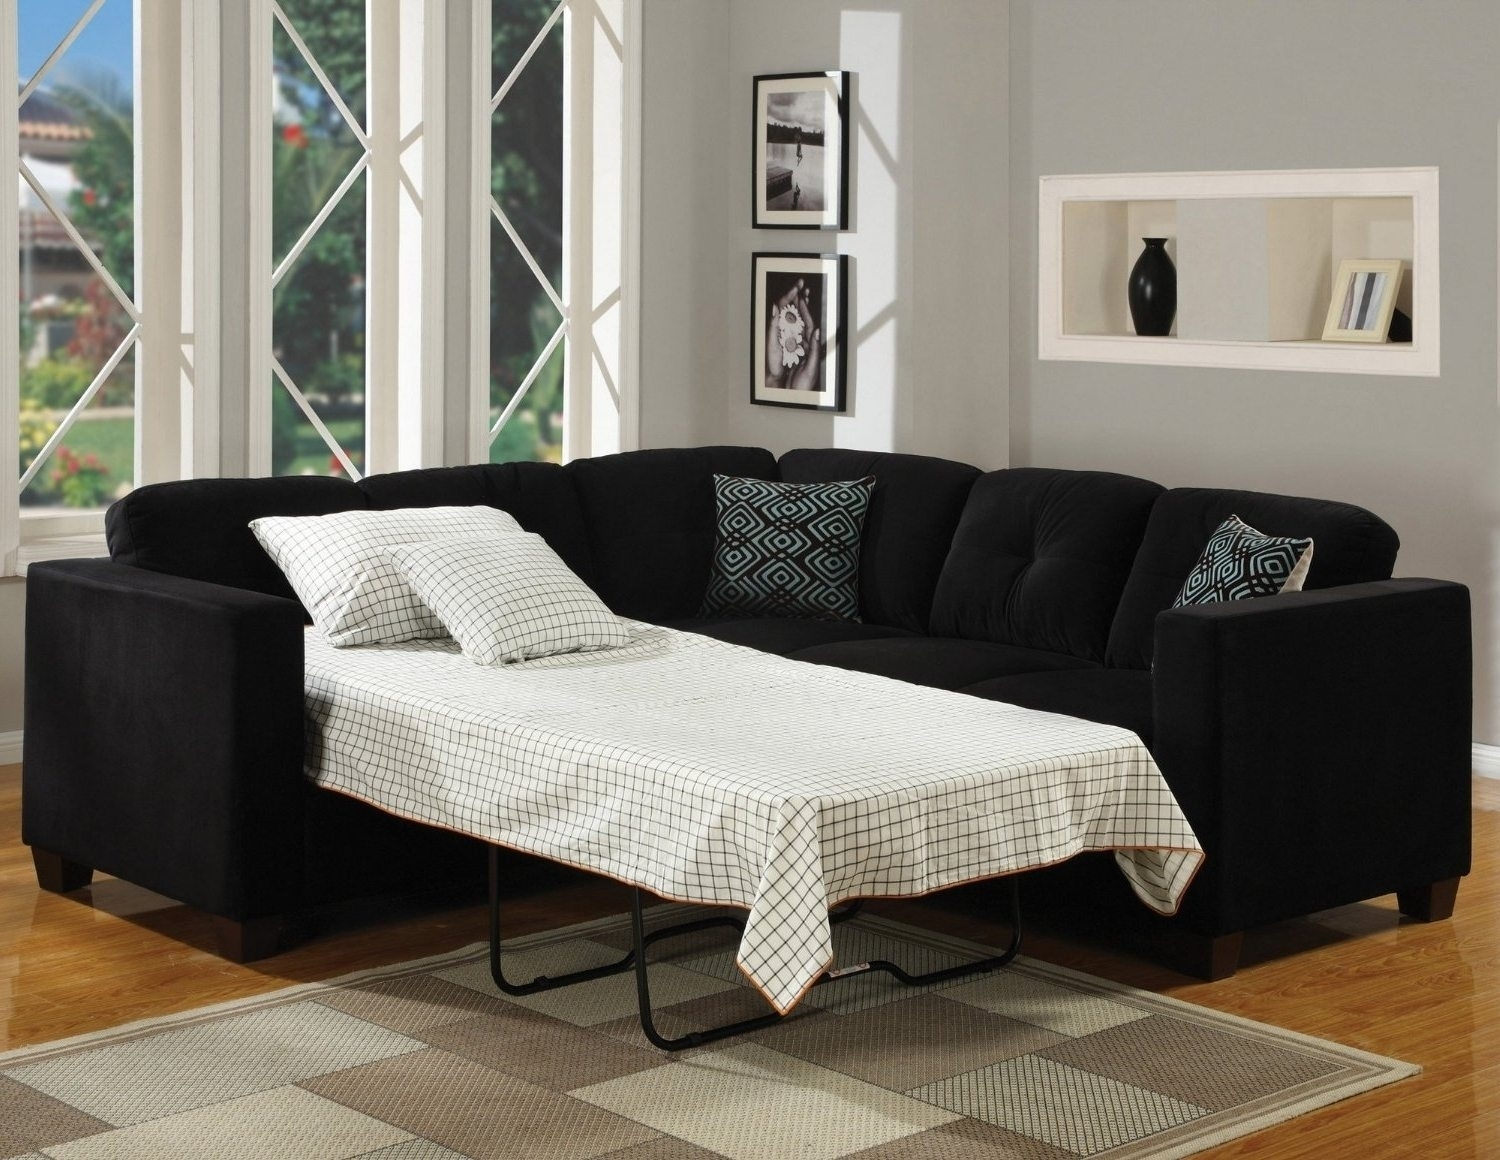 Furniture : Sectional Too Large For Room L Shaped Couch Leather With 100X100 Sectional Sofas (Image 7 of 10)